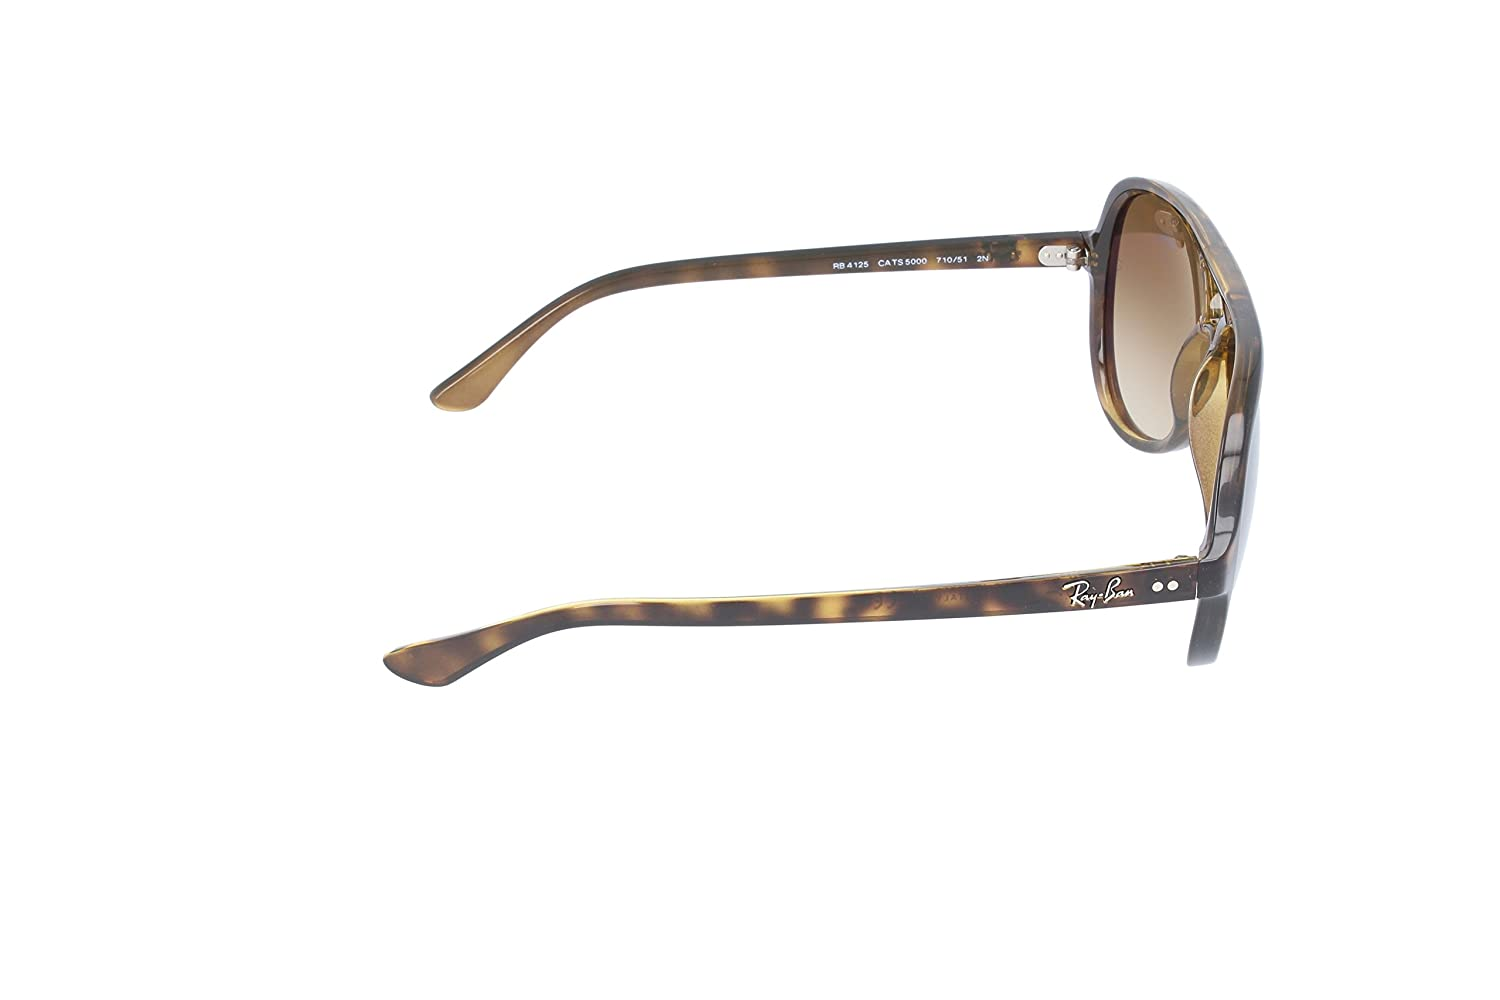 621d5aaf34d Amazon.com  Ray-Ban RB4125 Cats 5000 Oversized Sunglasses  Clothing